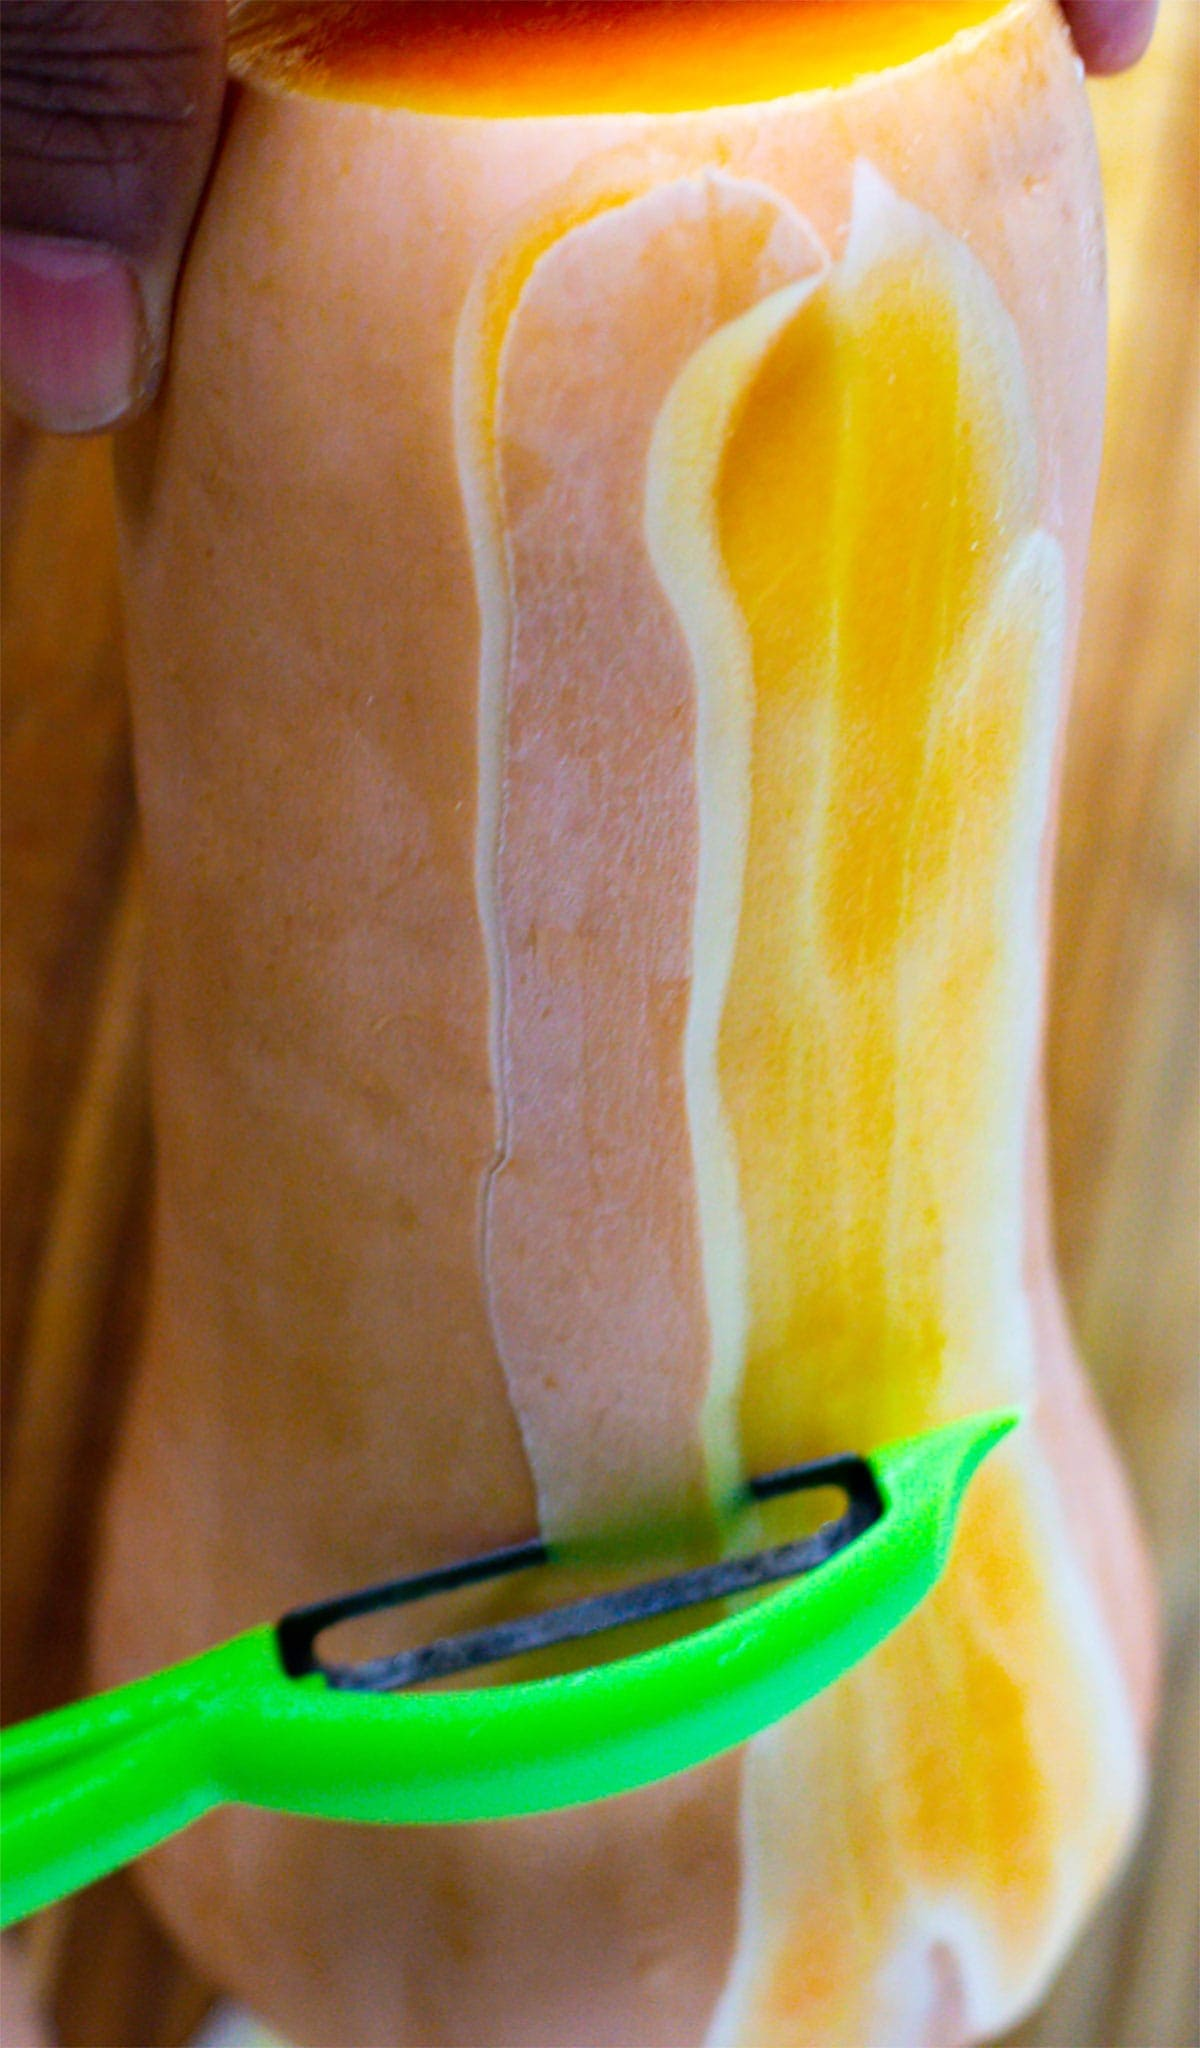 Peeling butternut squash with a vegetable peeler